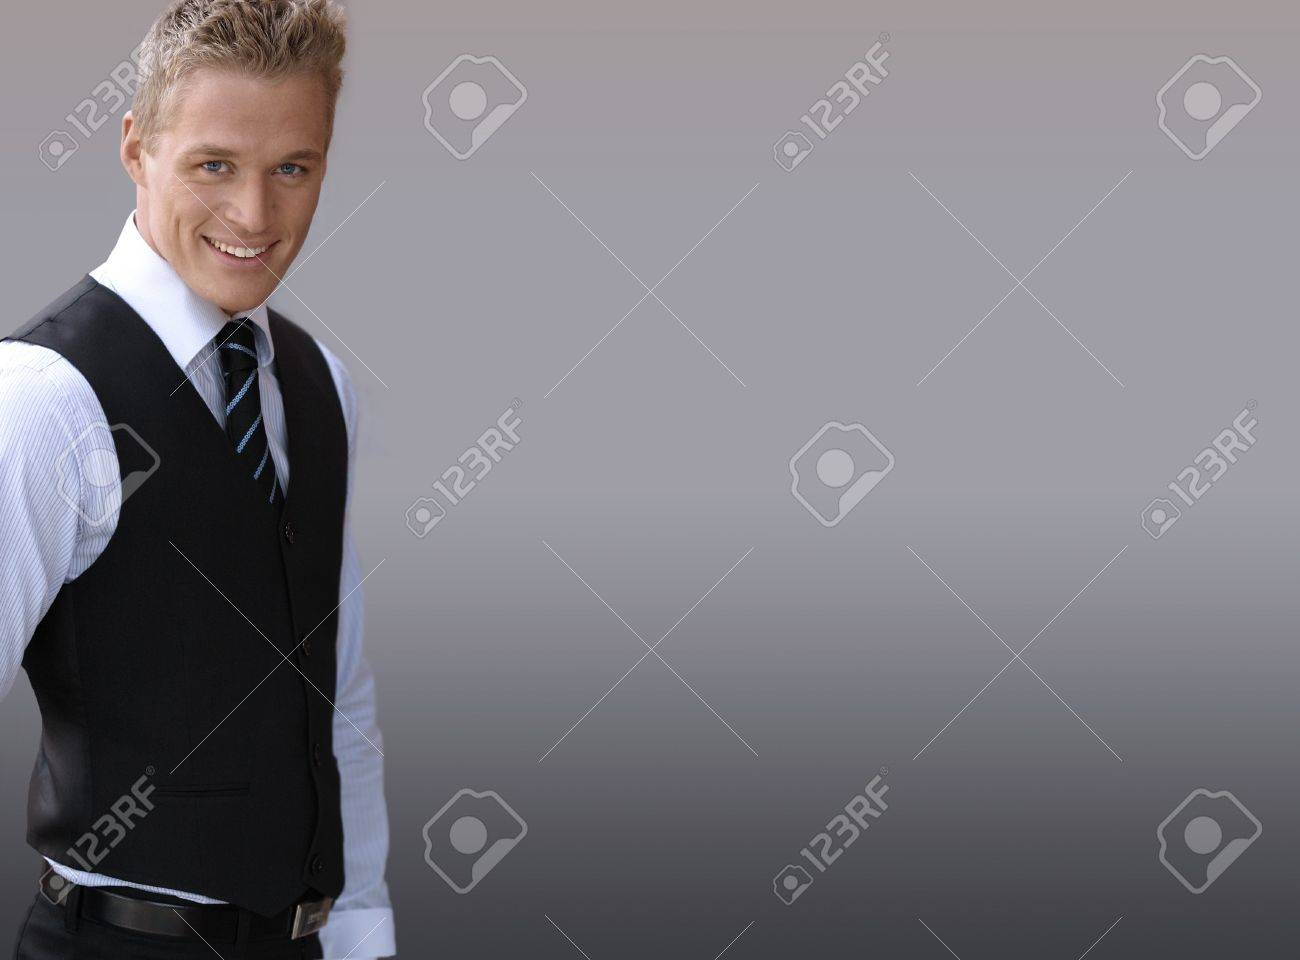 Attractive Smiling Young Businessman Against Neutral Background ...